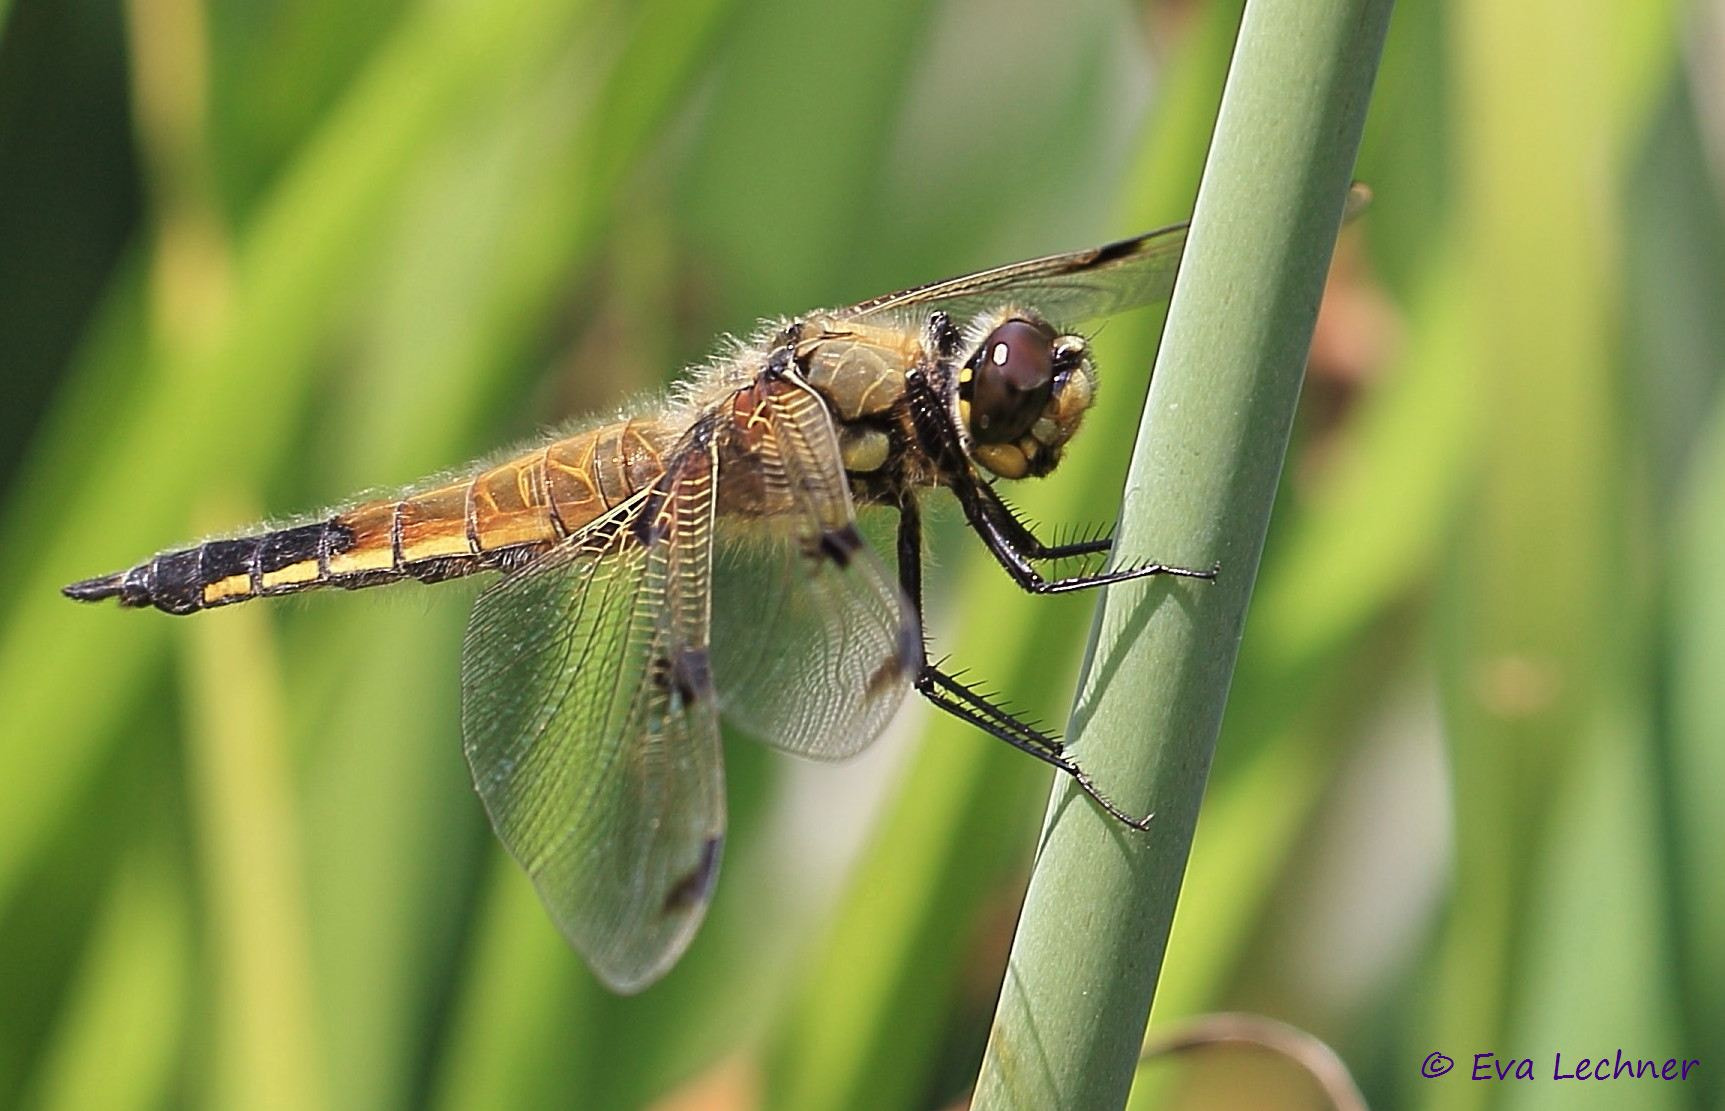 Photograph Dragonfly by Eva Lechner on 500px